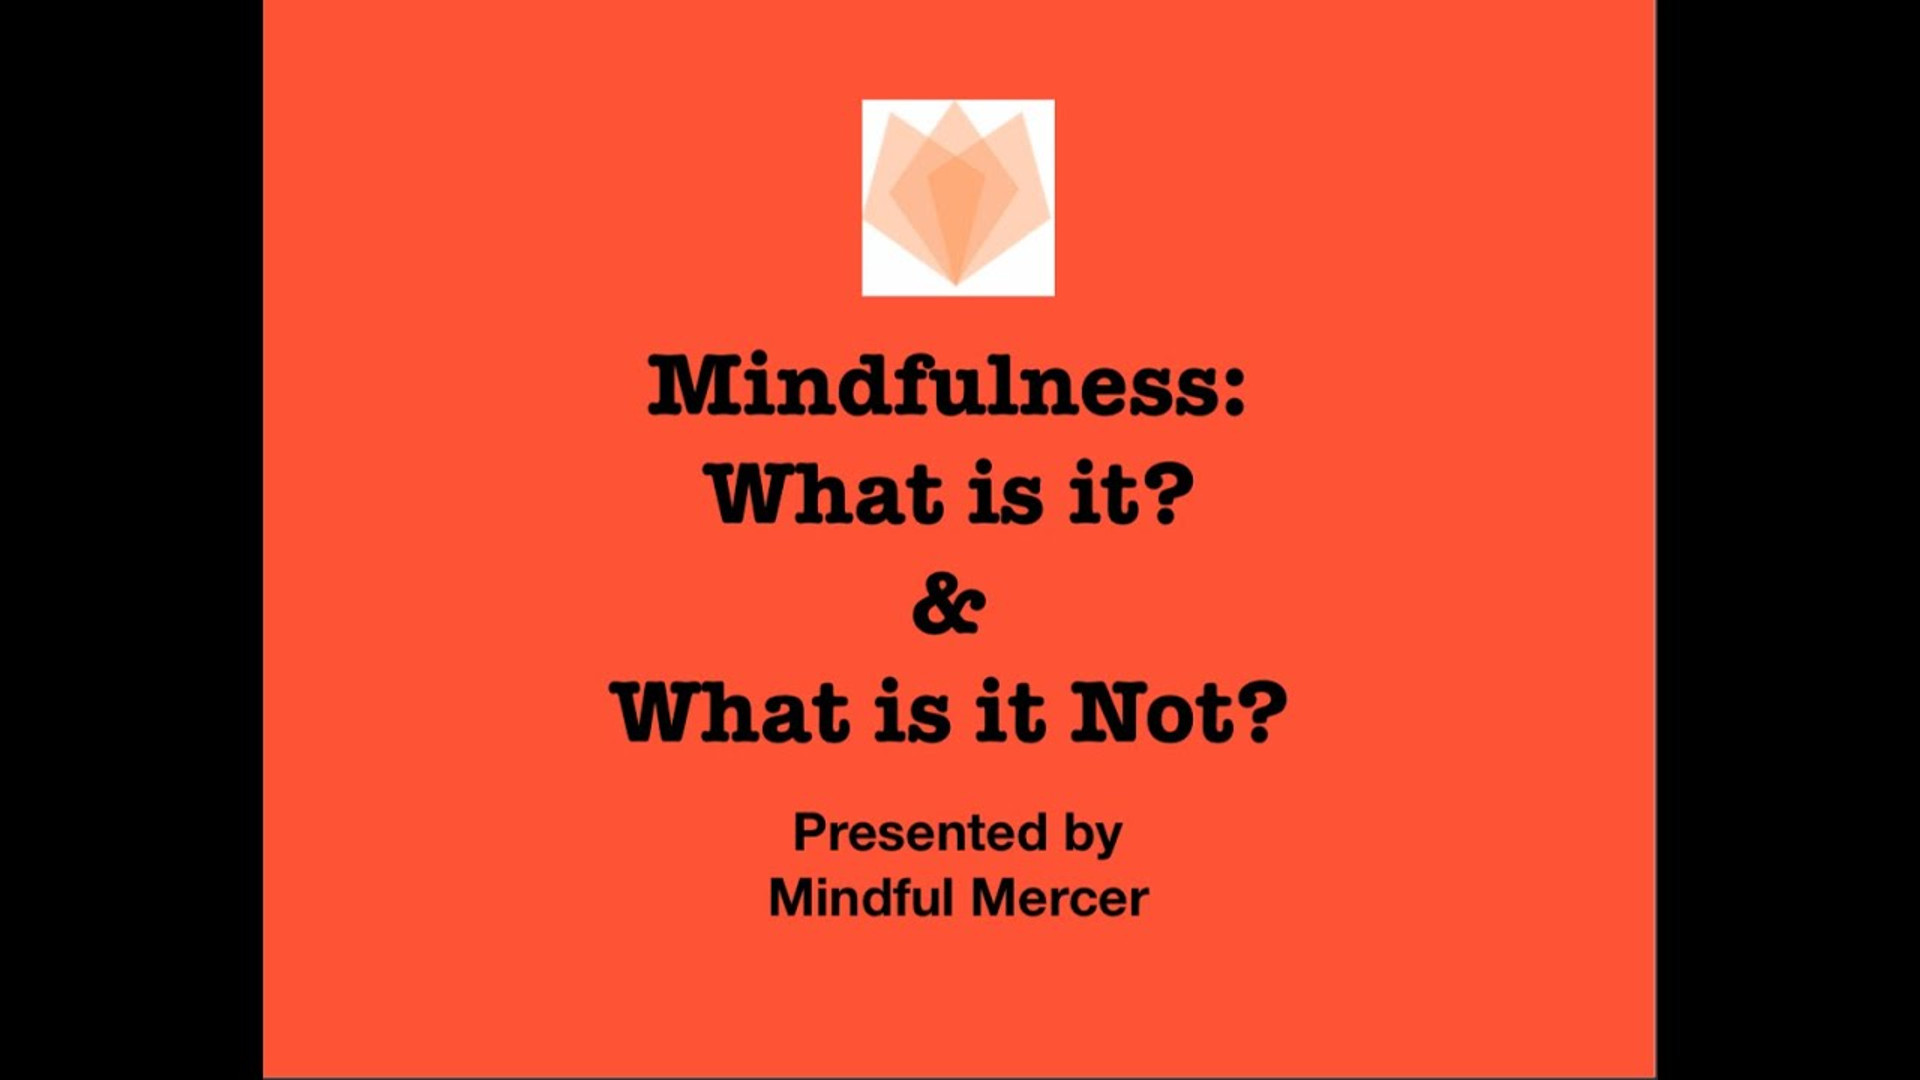 Mindfulness: What Is It & What Is It Not